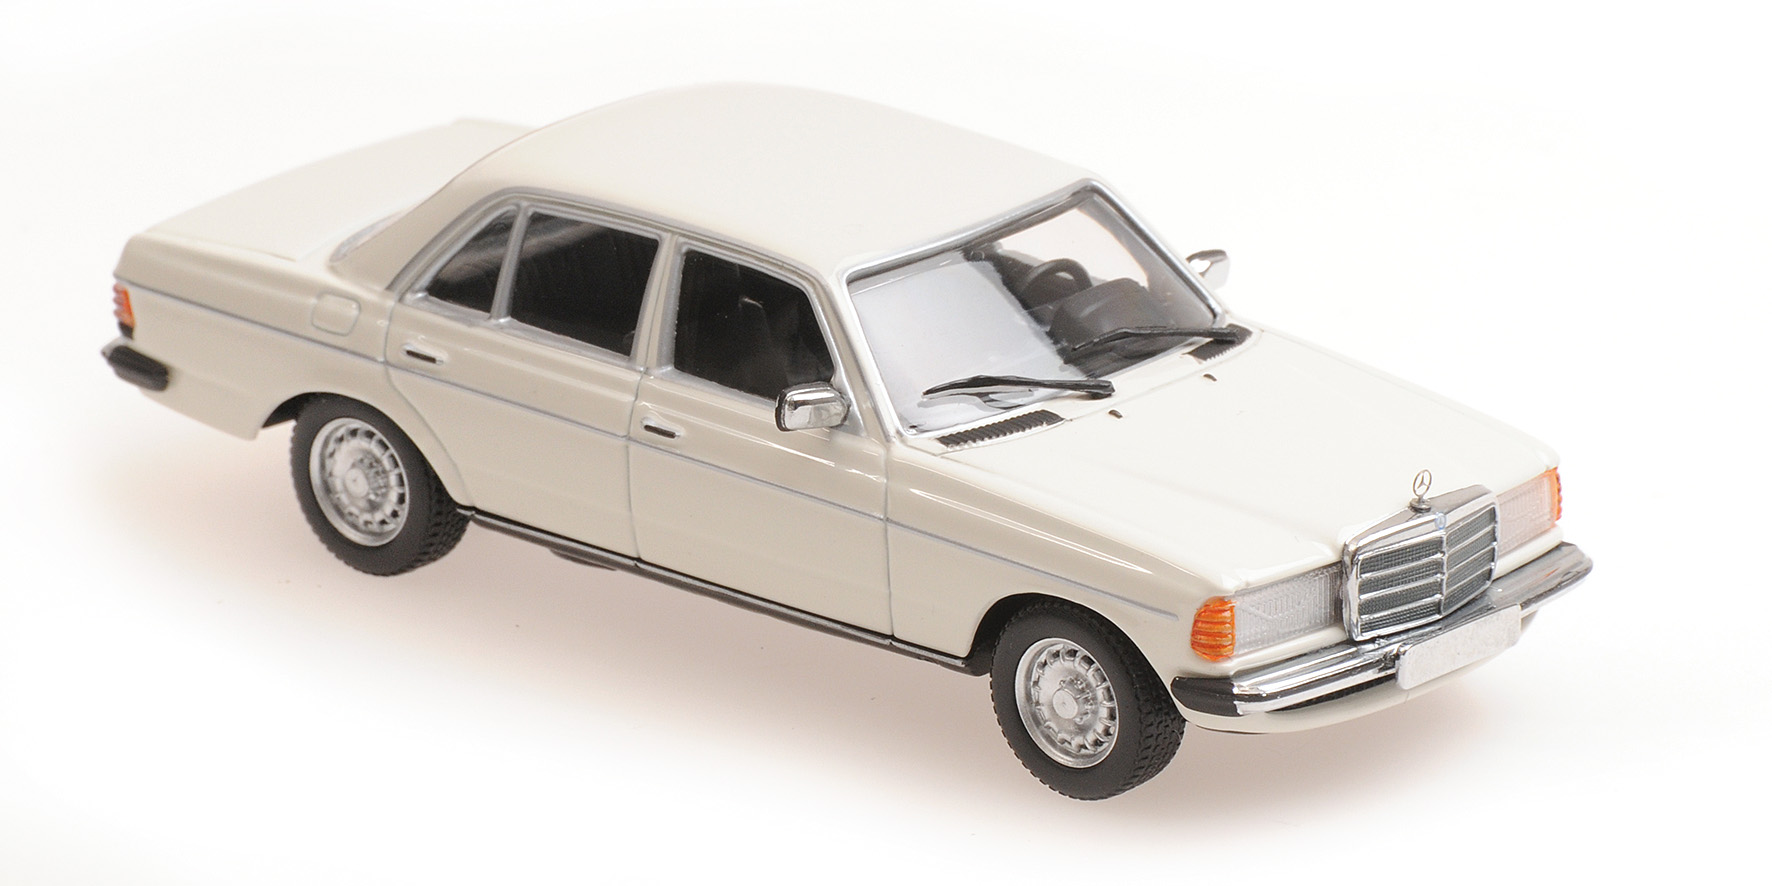 Mercedes-Benz 230E (W123) 1982 Wit